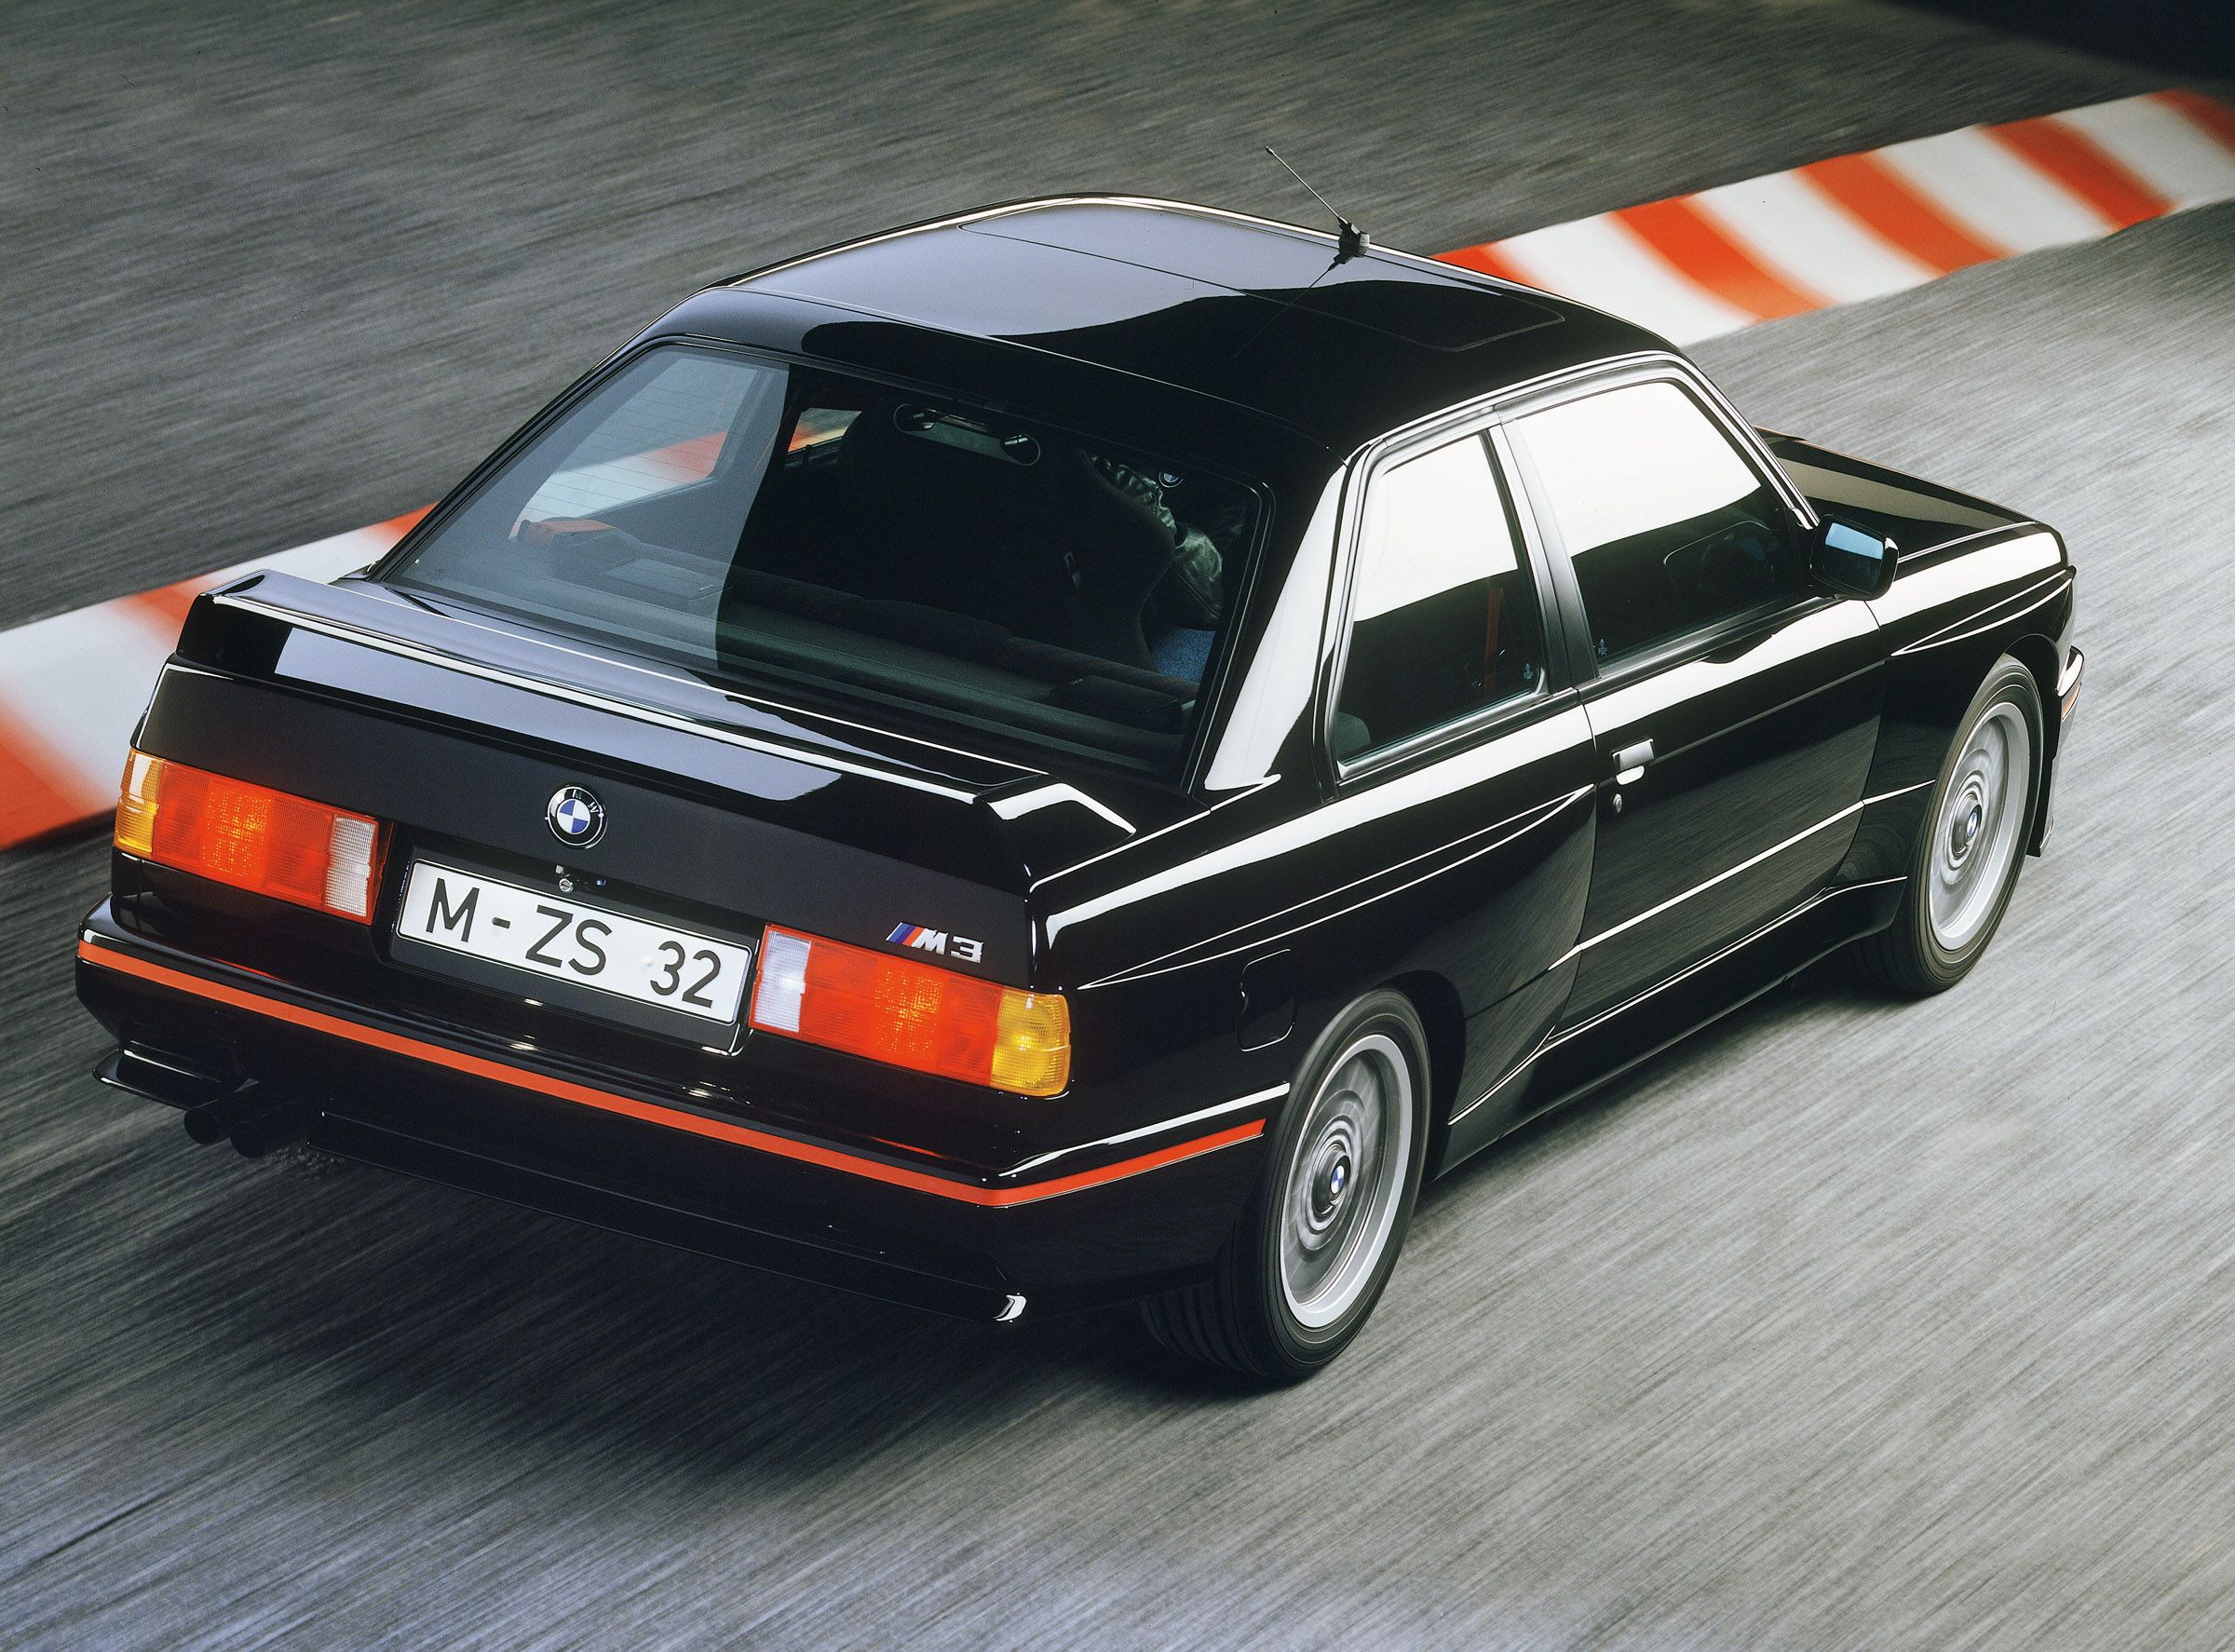 The 25 Greatest Boxy Cars Of All Time